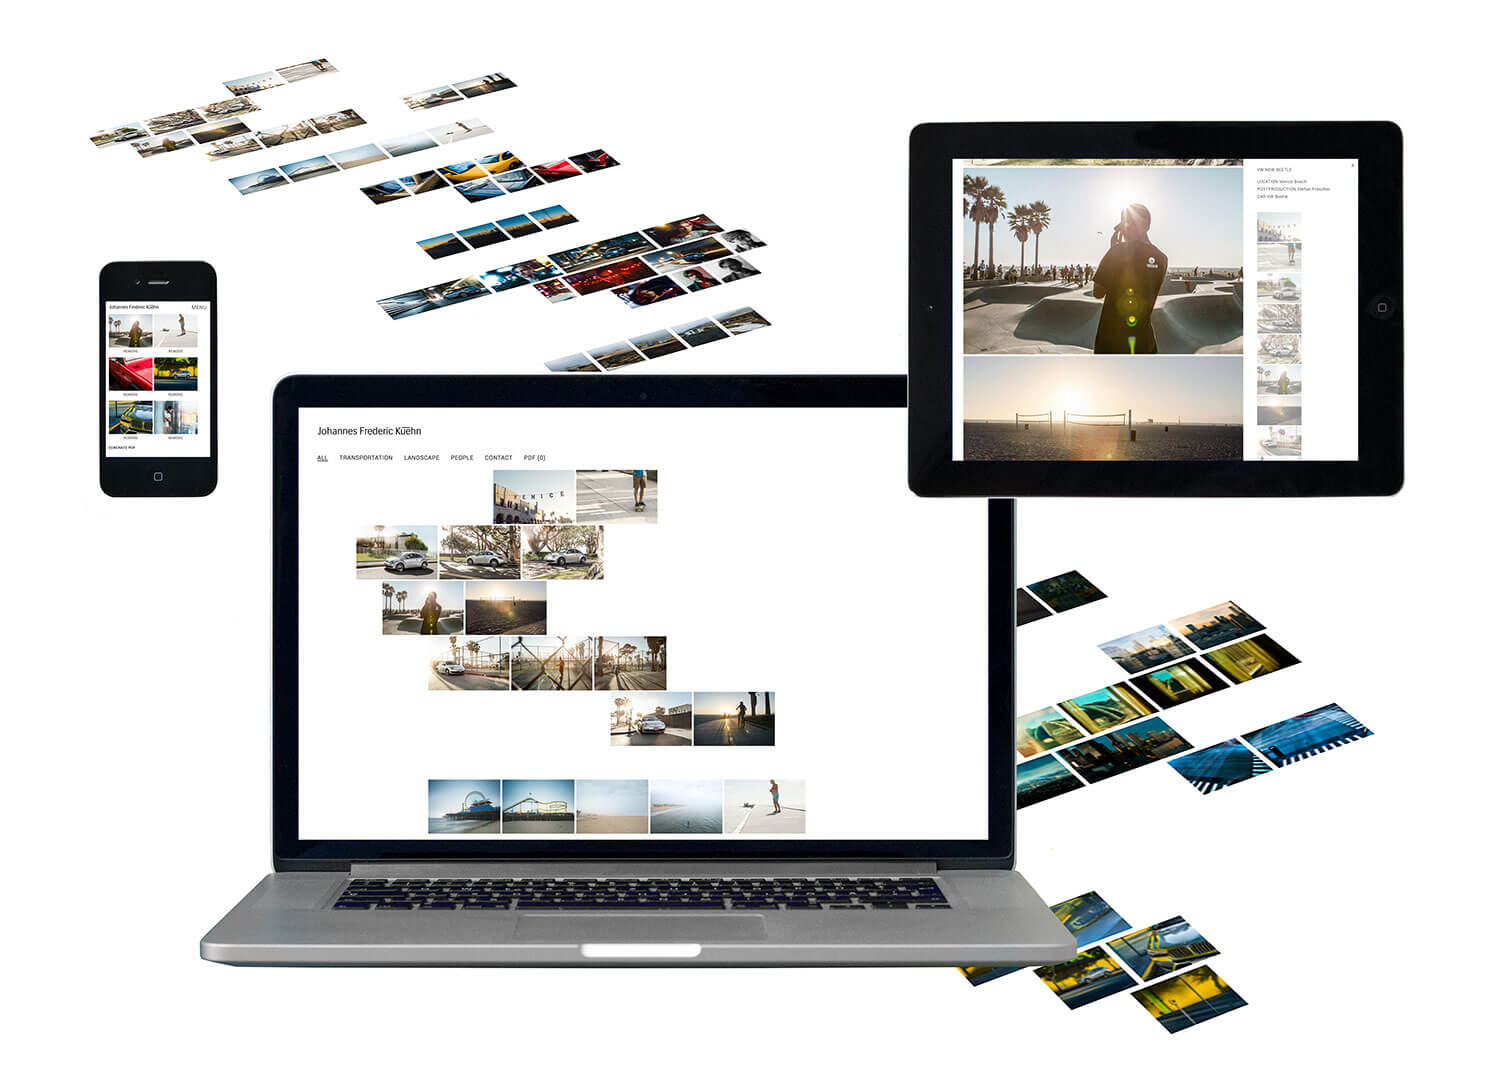 Photo of the responsive website design for Johannes Frederic Kühn shown on a mobile, tablet and desktop screen.